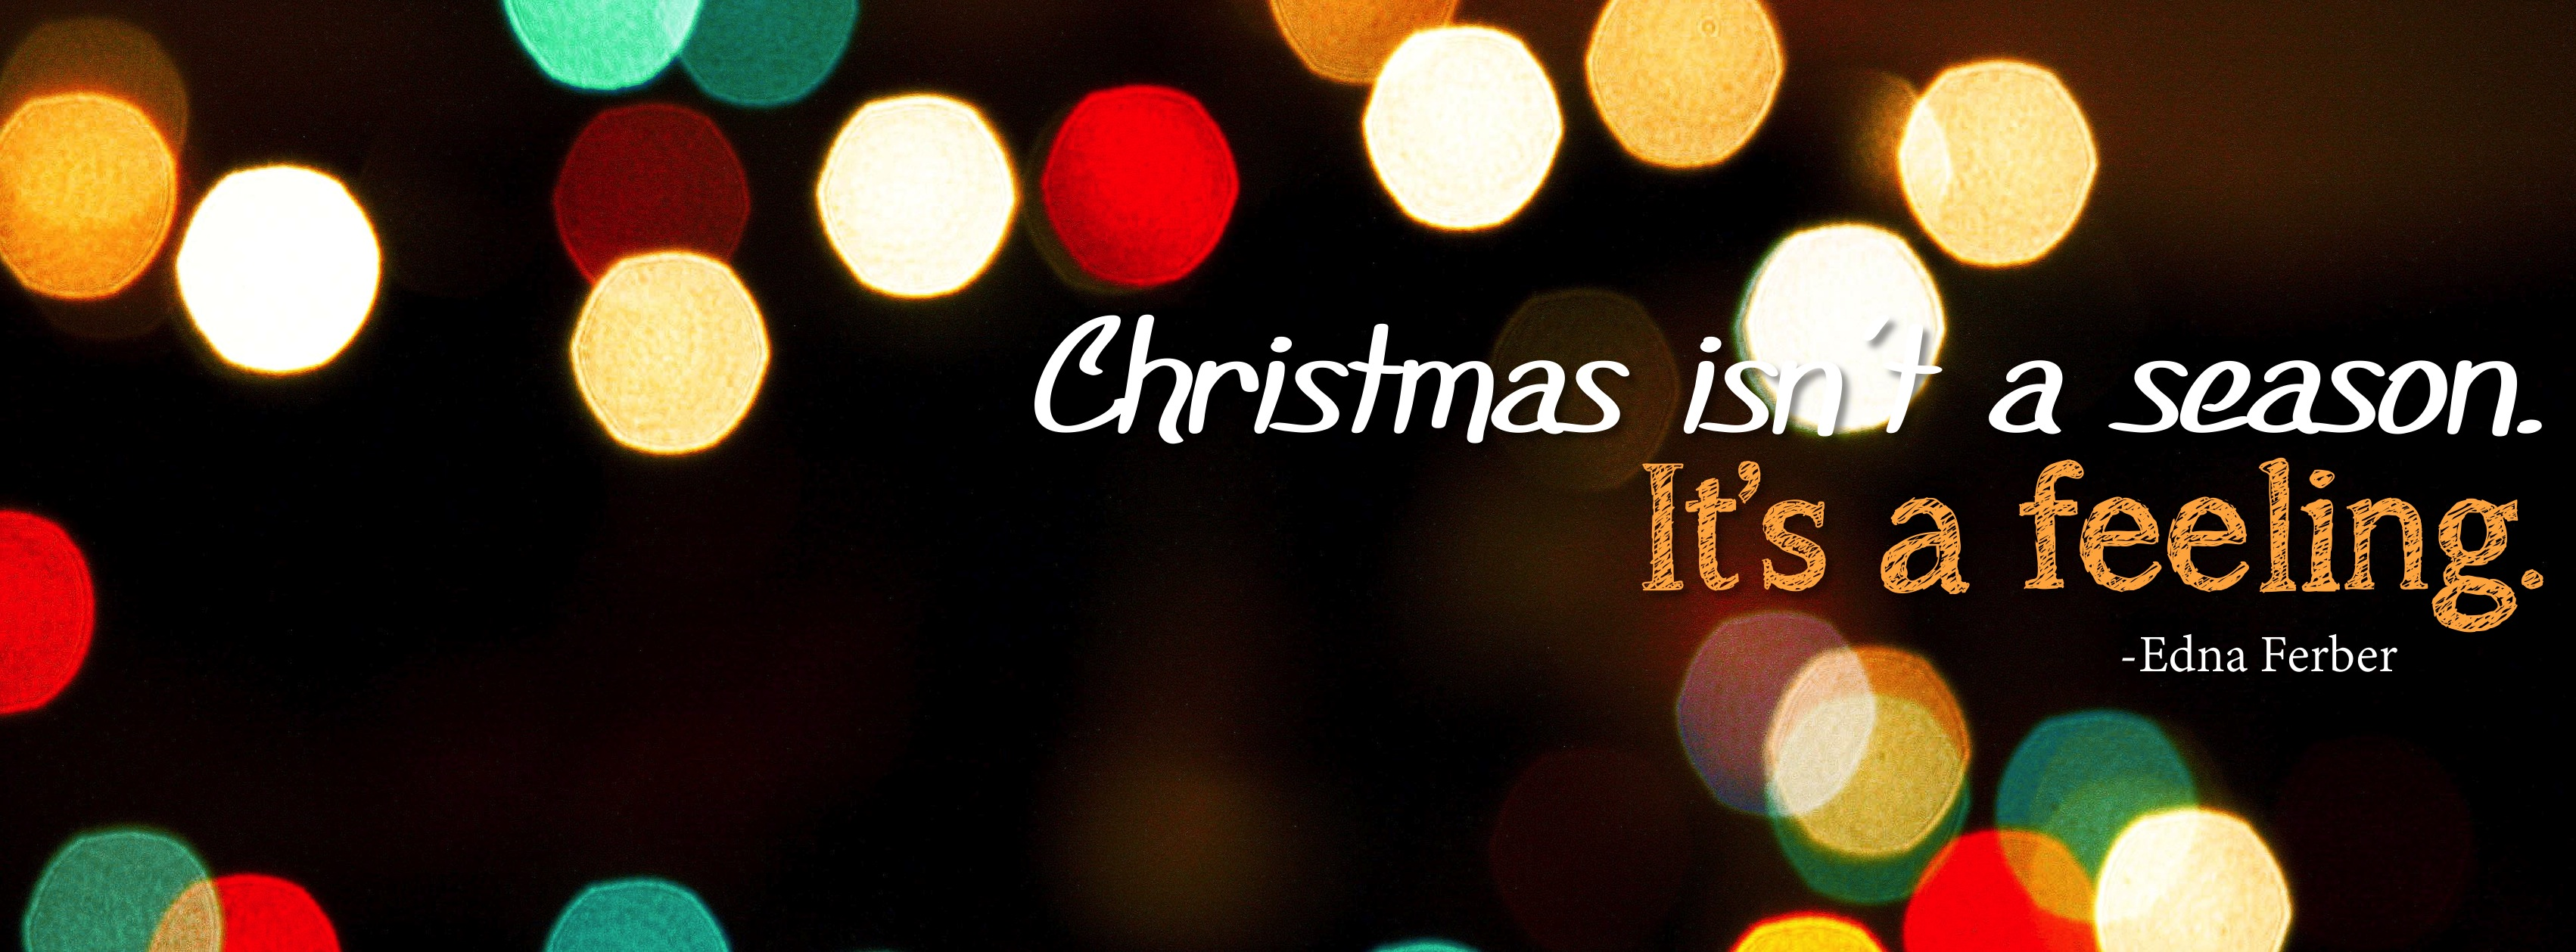 free christmas facebook cover photo downloads blair blogs